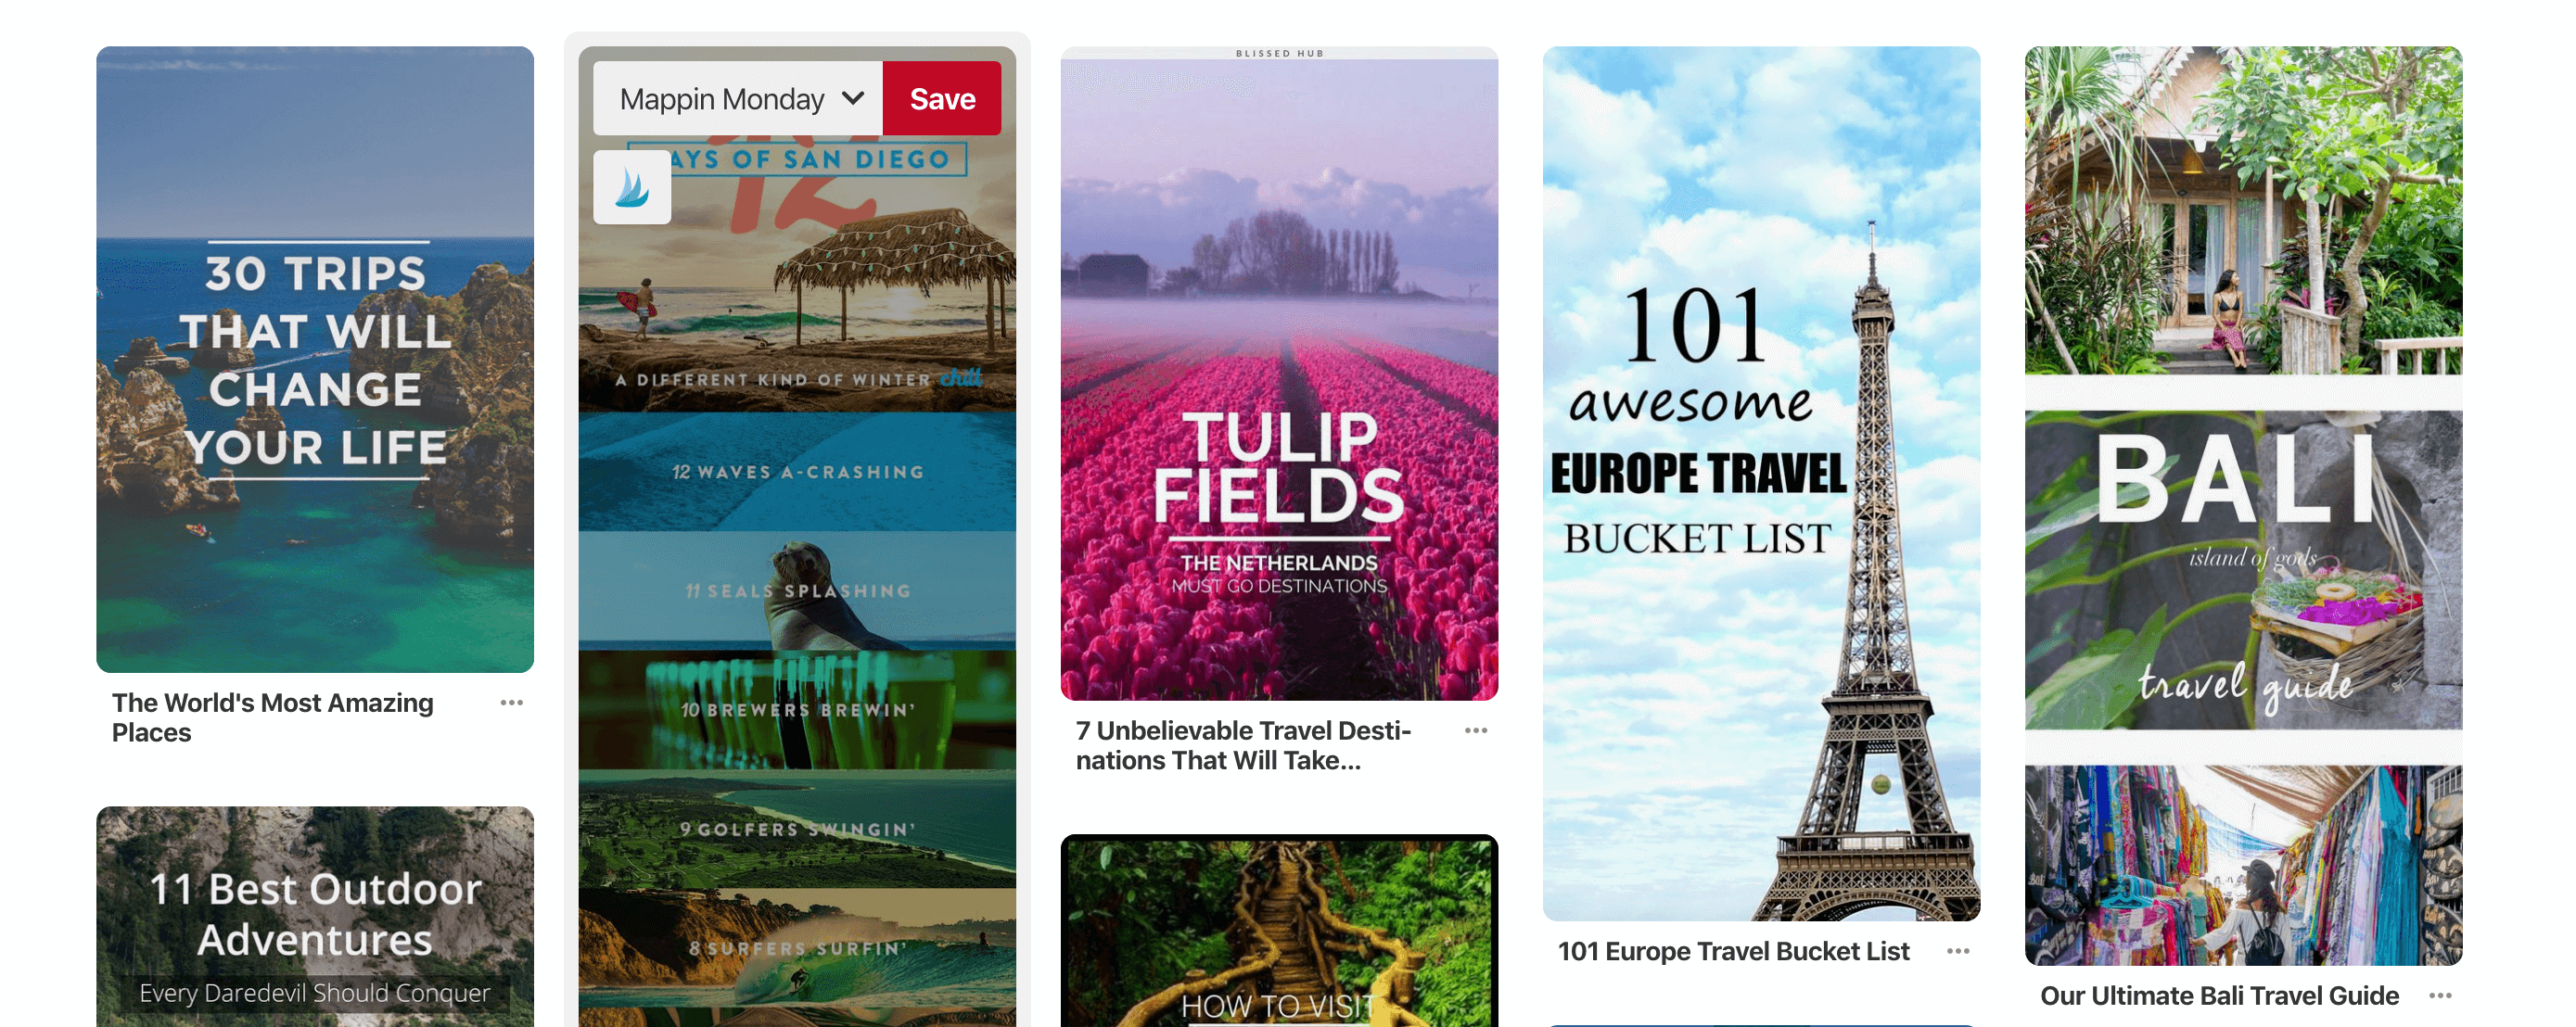 Pinterest for travel bloggers - topics that do well